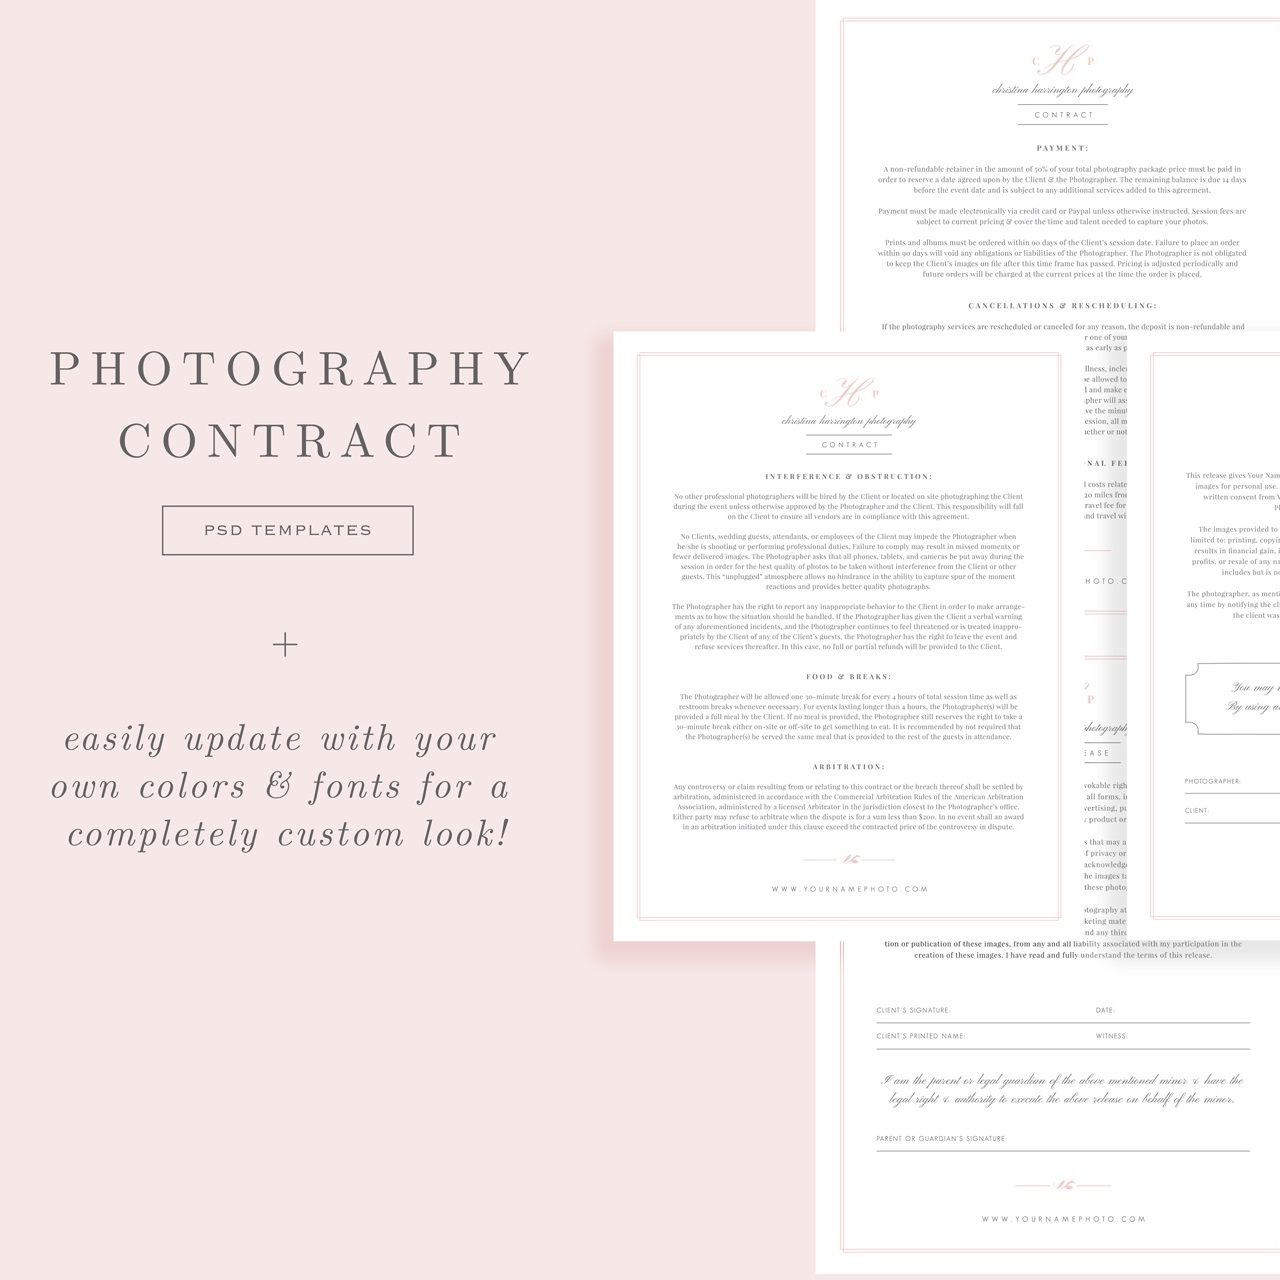 007 Fearsome Wedding Photographer Contract Template Photo  Free Photography UkFull